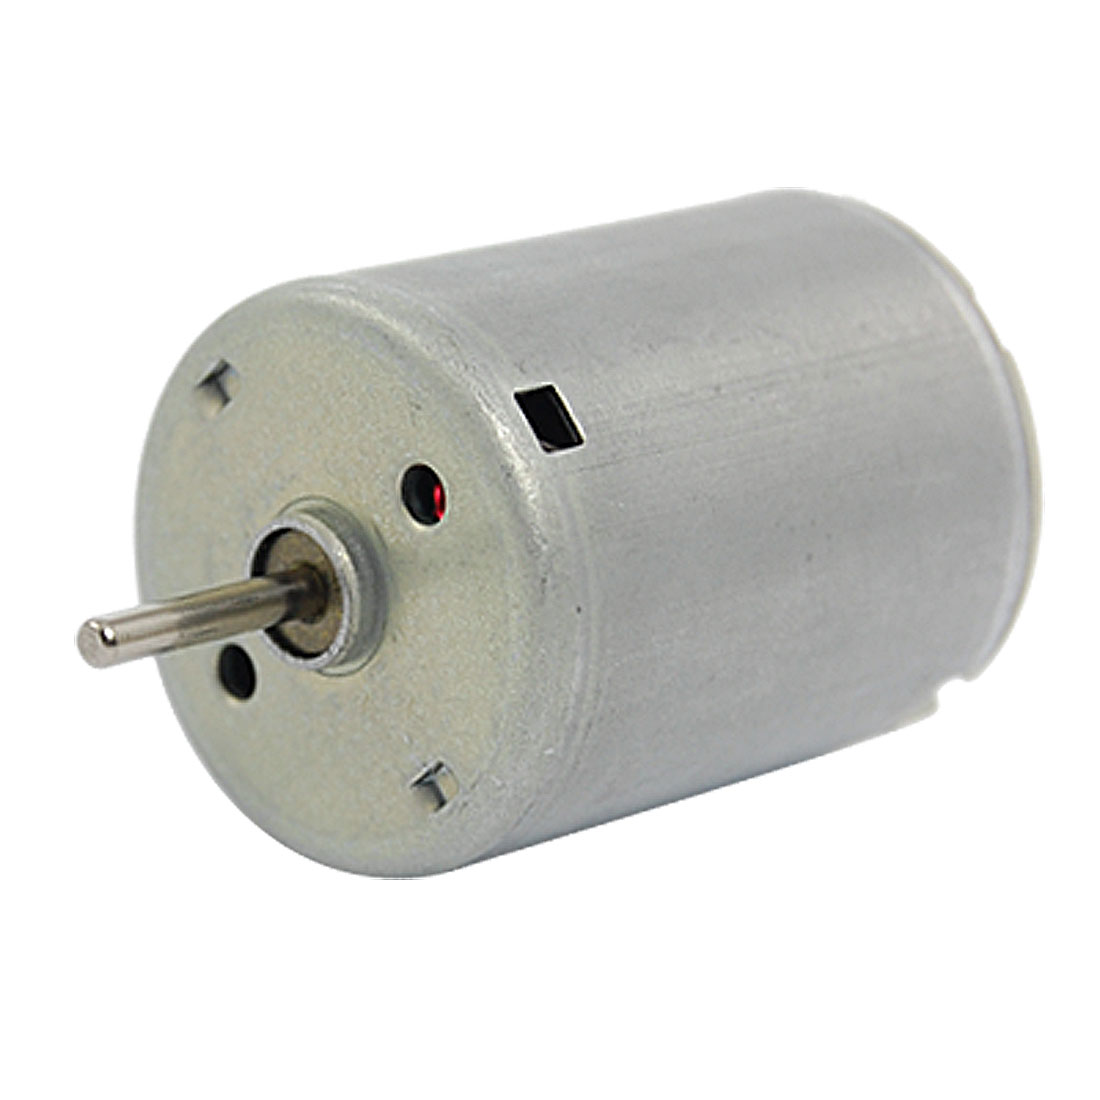 DC 12V 13000RPM 0.12A 2mm Shaft Mini Motor for Electric DIY Toys